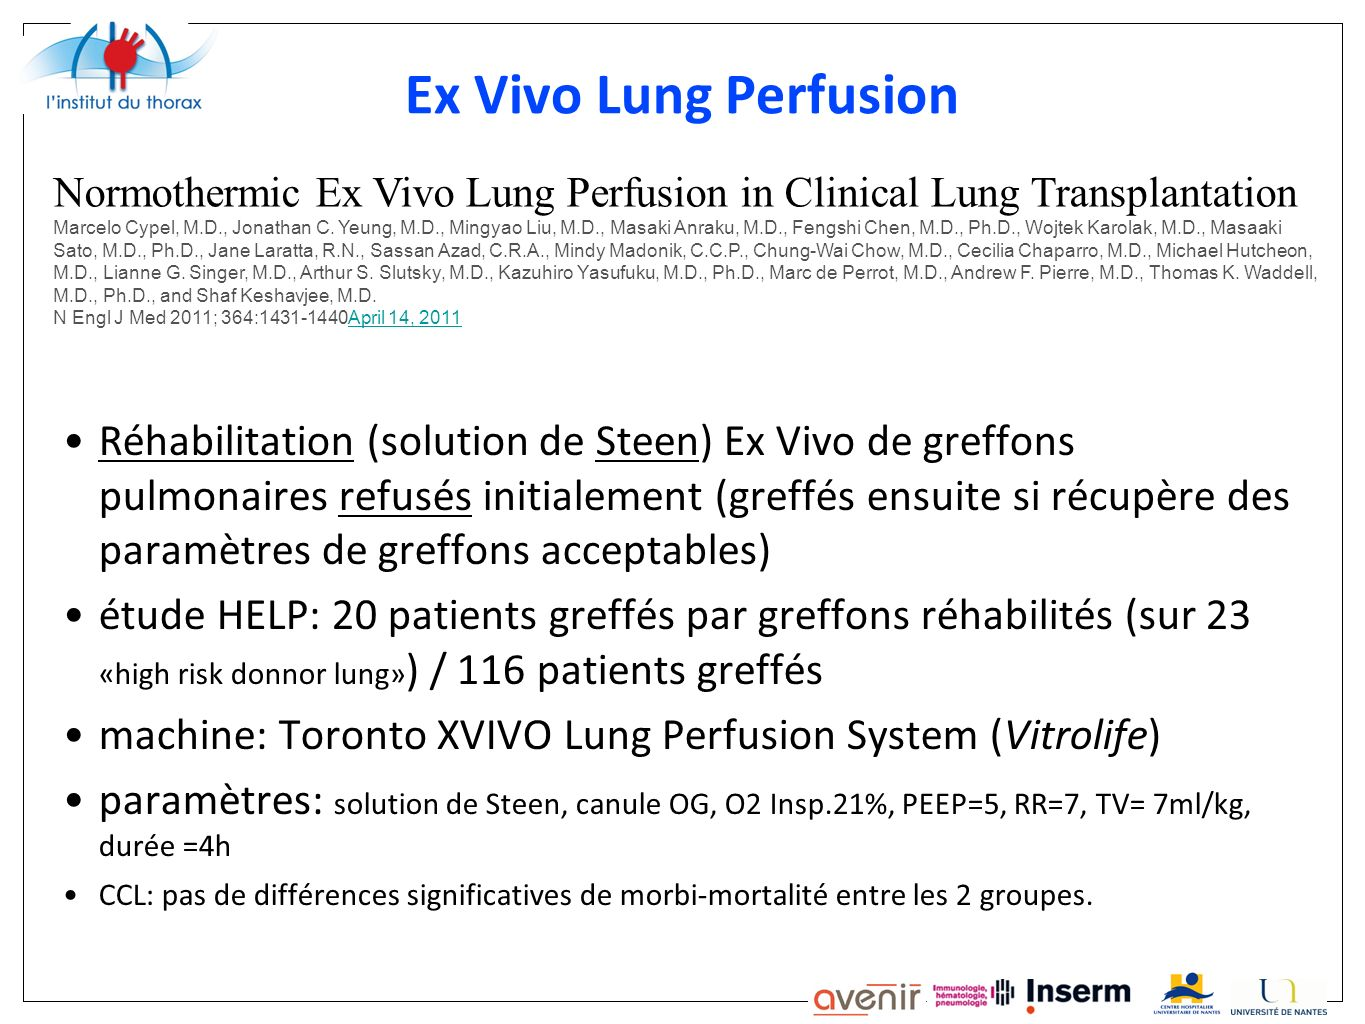 Ex Vivo Lung PerfusionNormothermic Ex Vivo Lung Perfusion in Clinical Lung Transplantation.